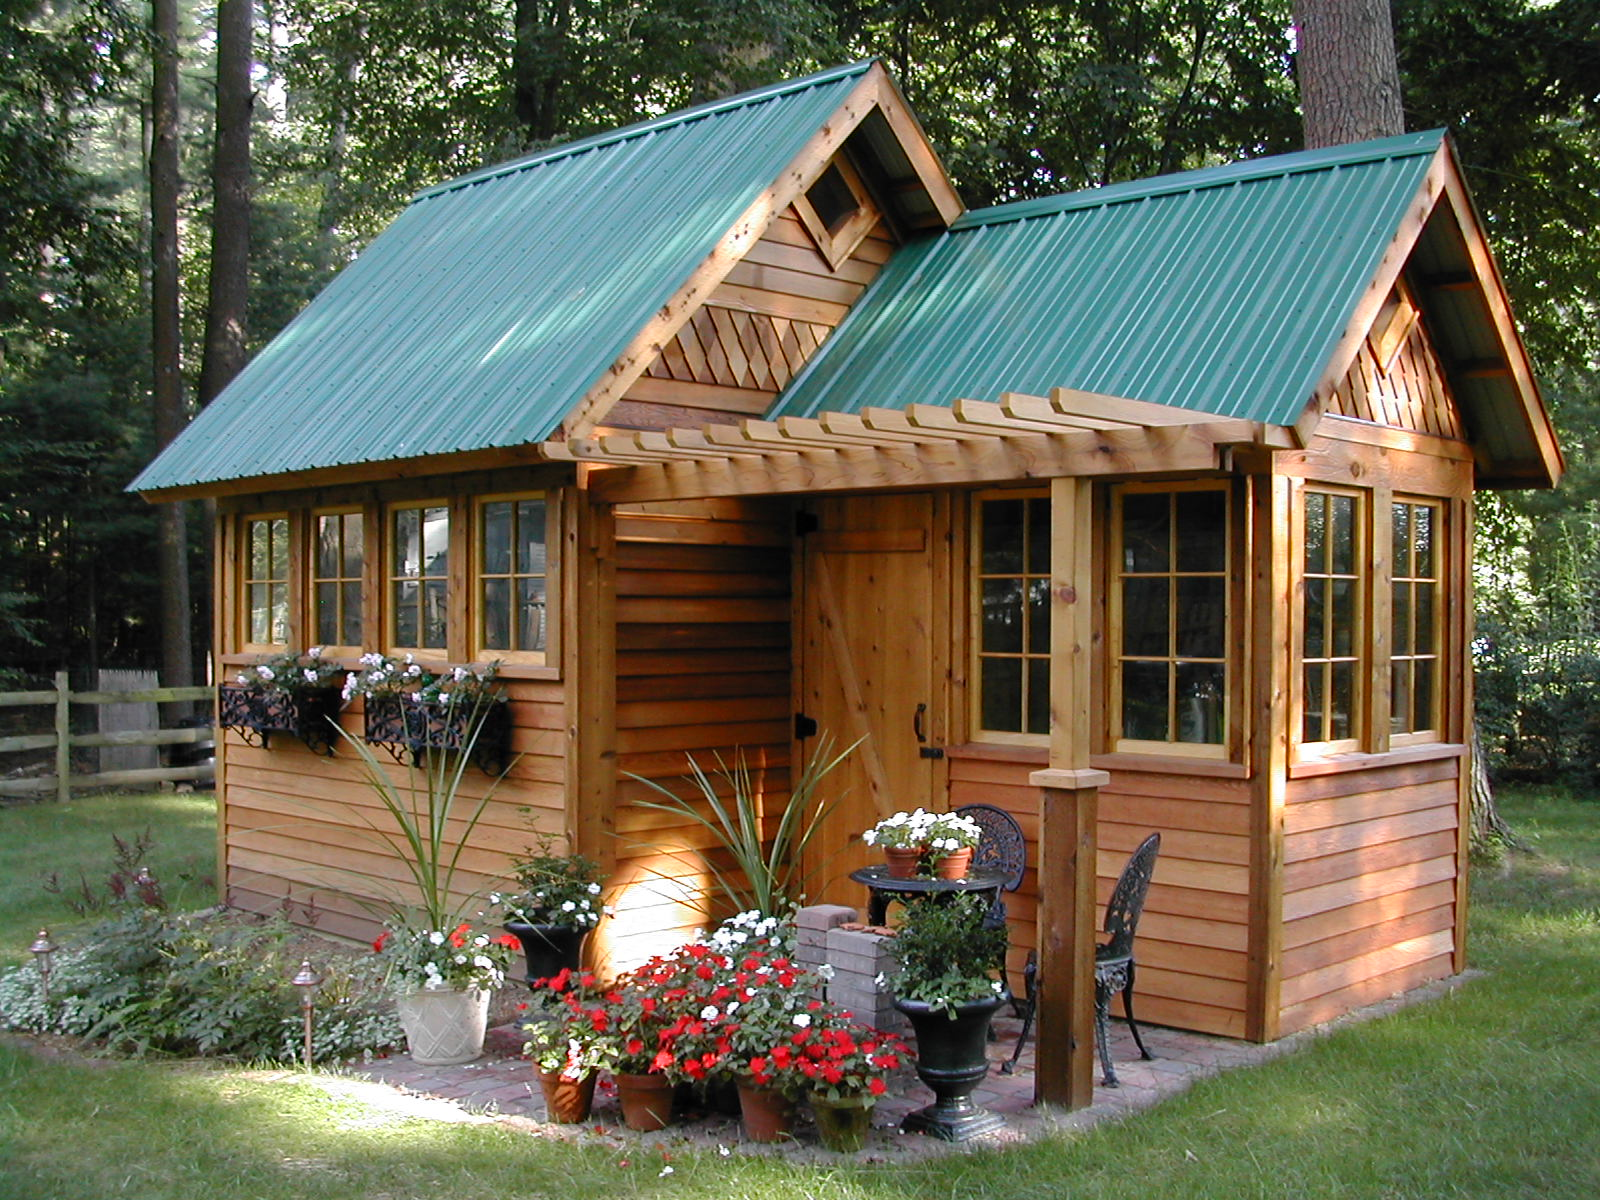 Shed Ideas : Issues To Consider When Having Free Shed Plans | Shed ...